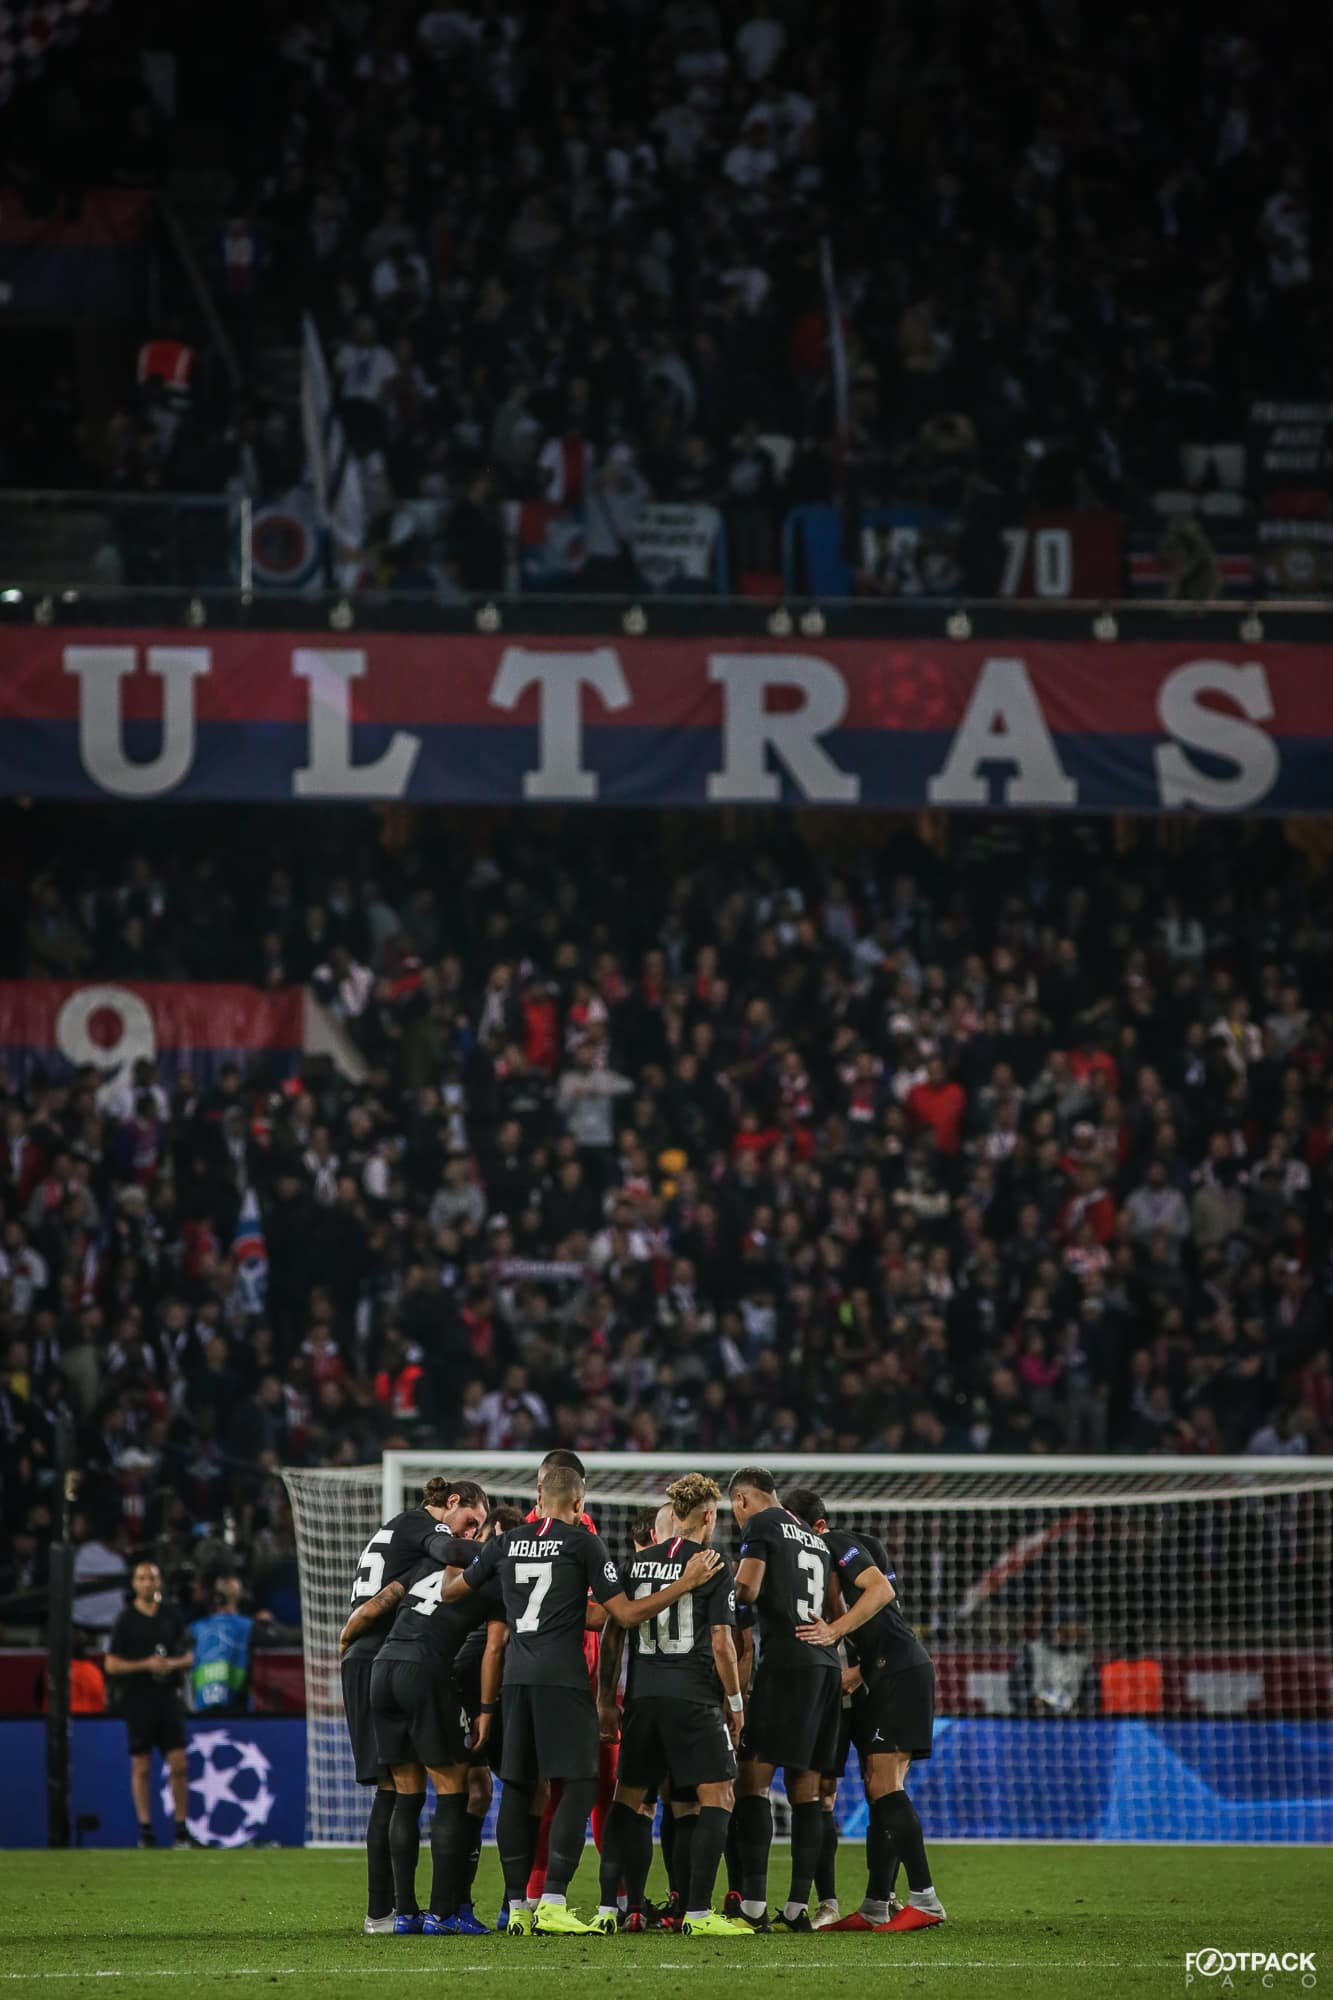 psg-ultras-top-50-photos-footpack